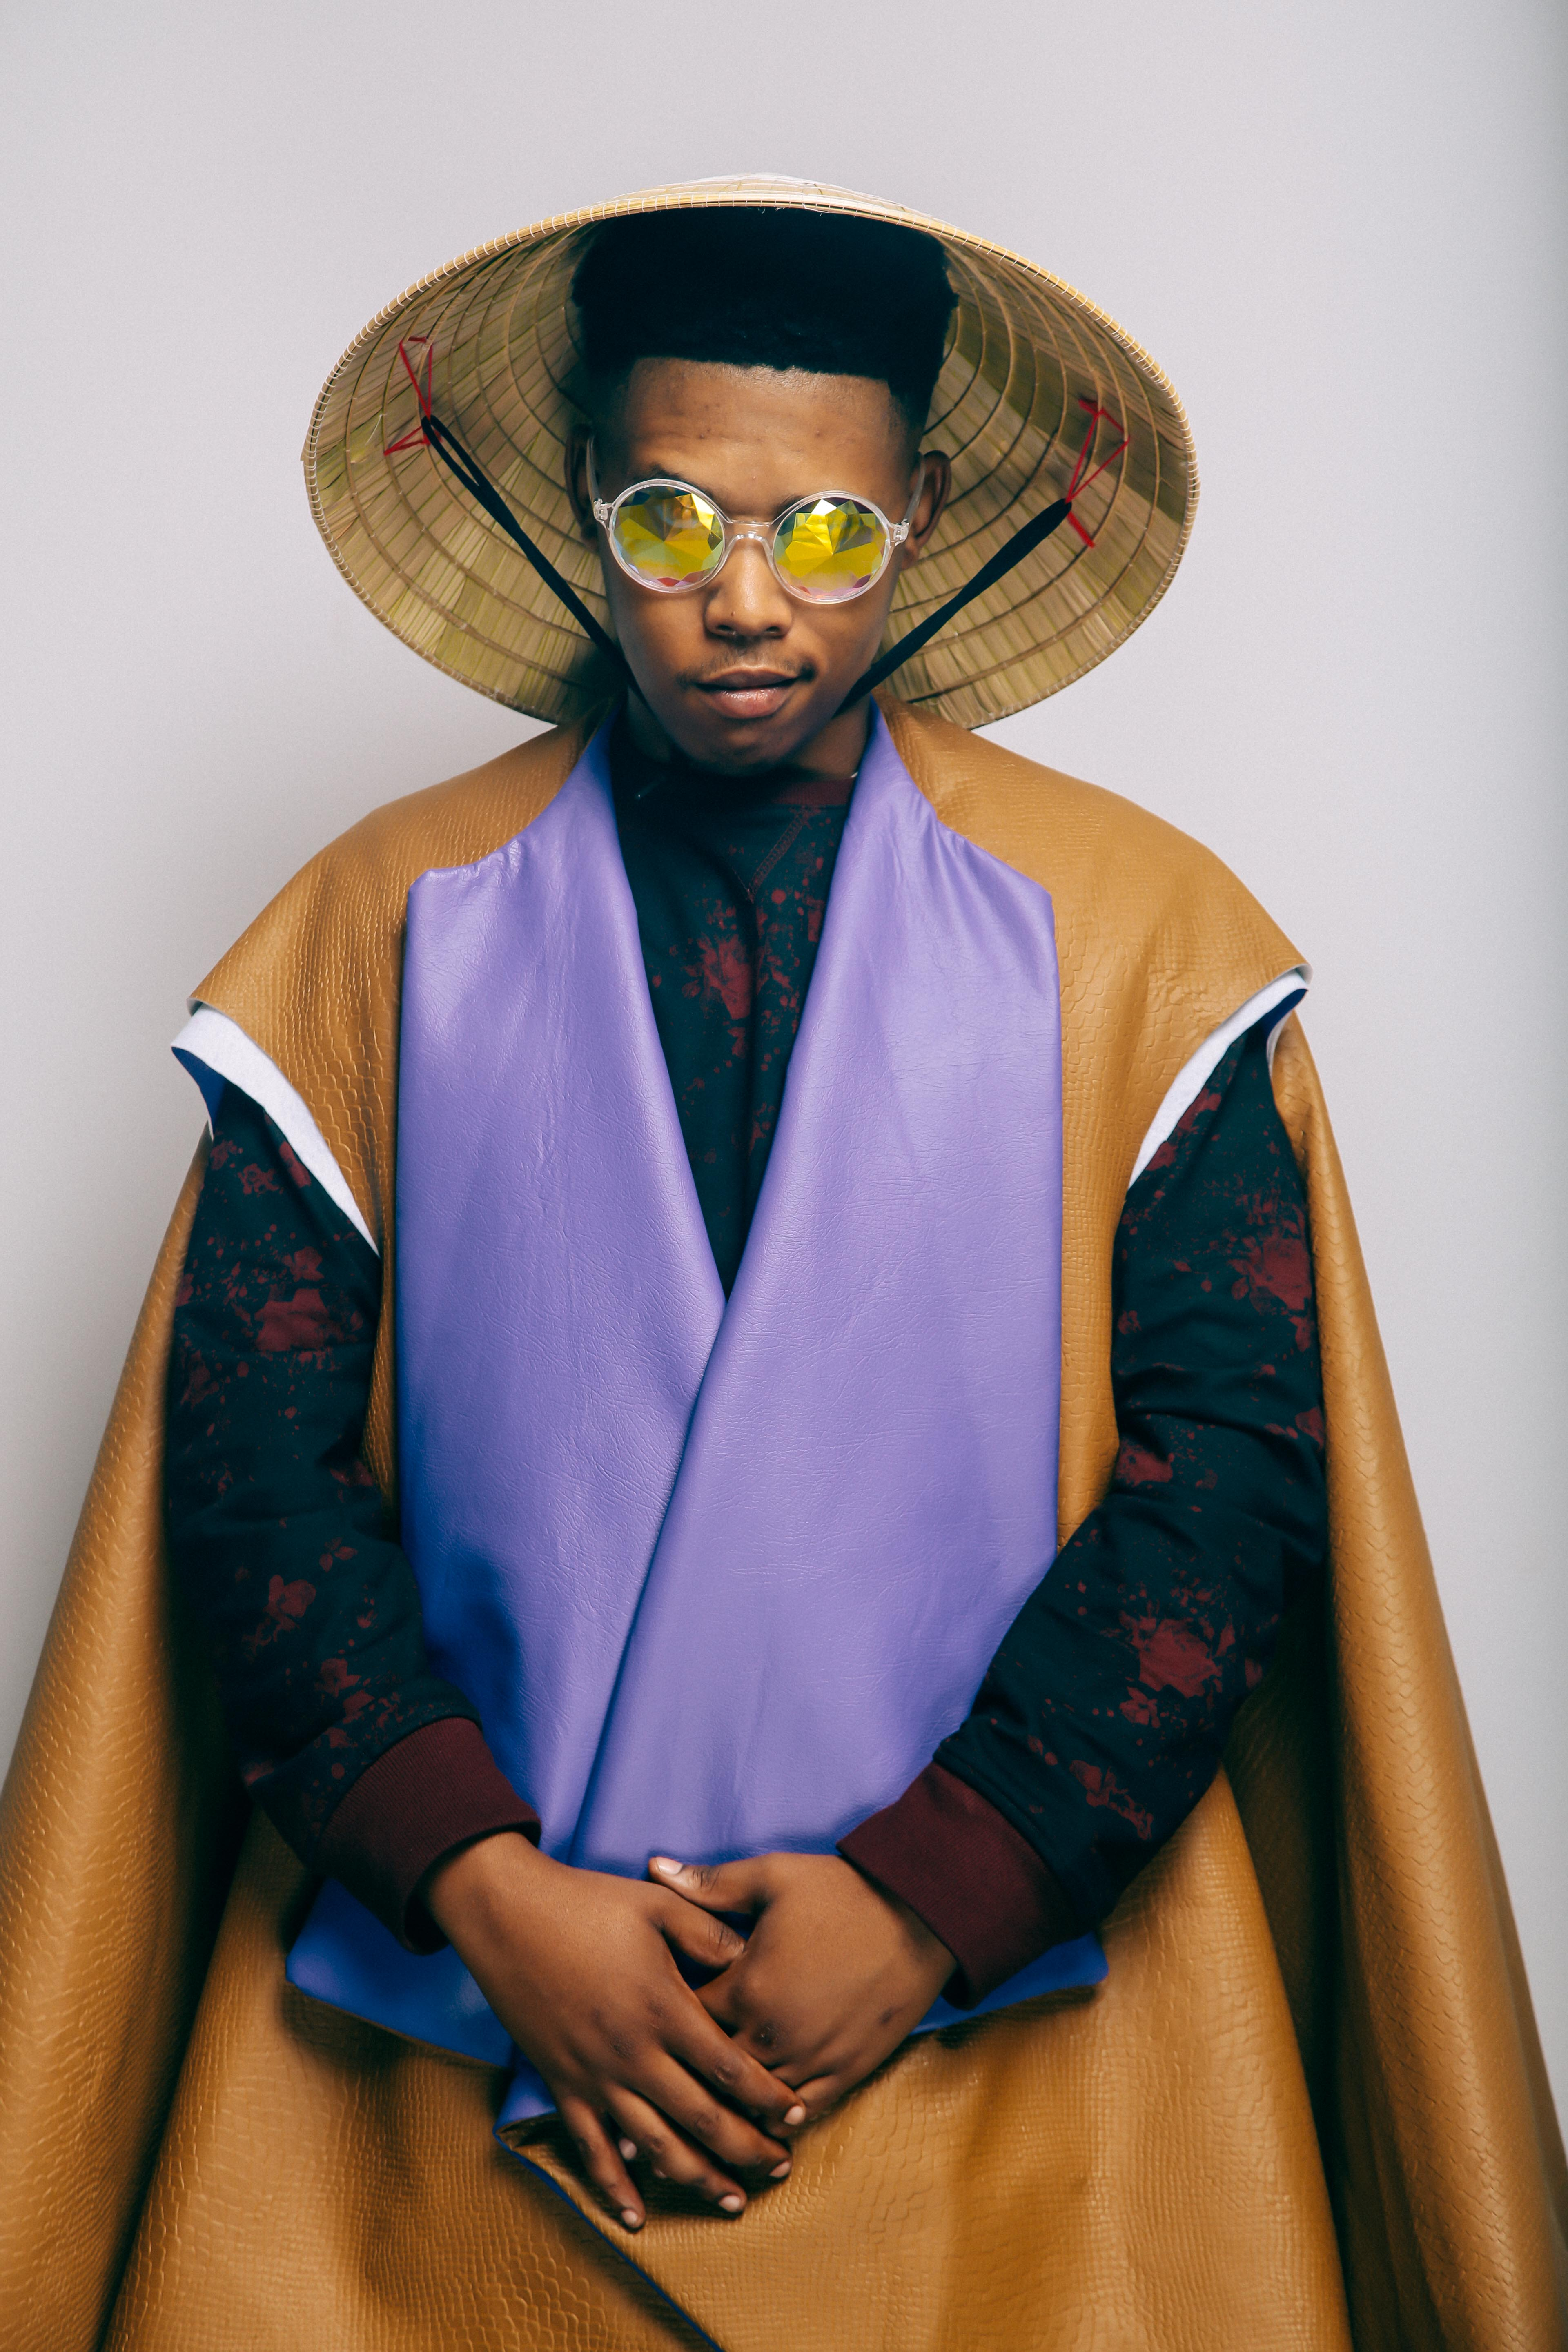 Jay Cubed Brings Electro Tribal Rap To Motswako With 'Stocko' Joint [Listen] RA0A9710